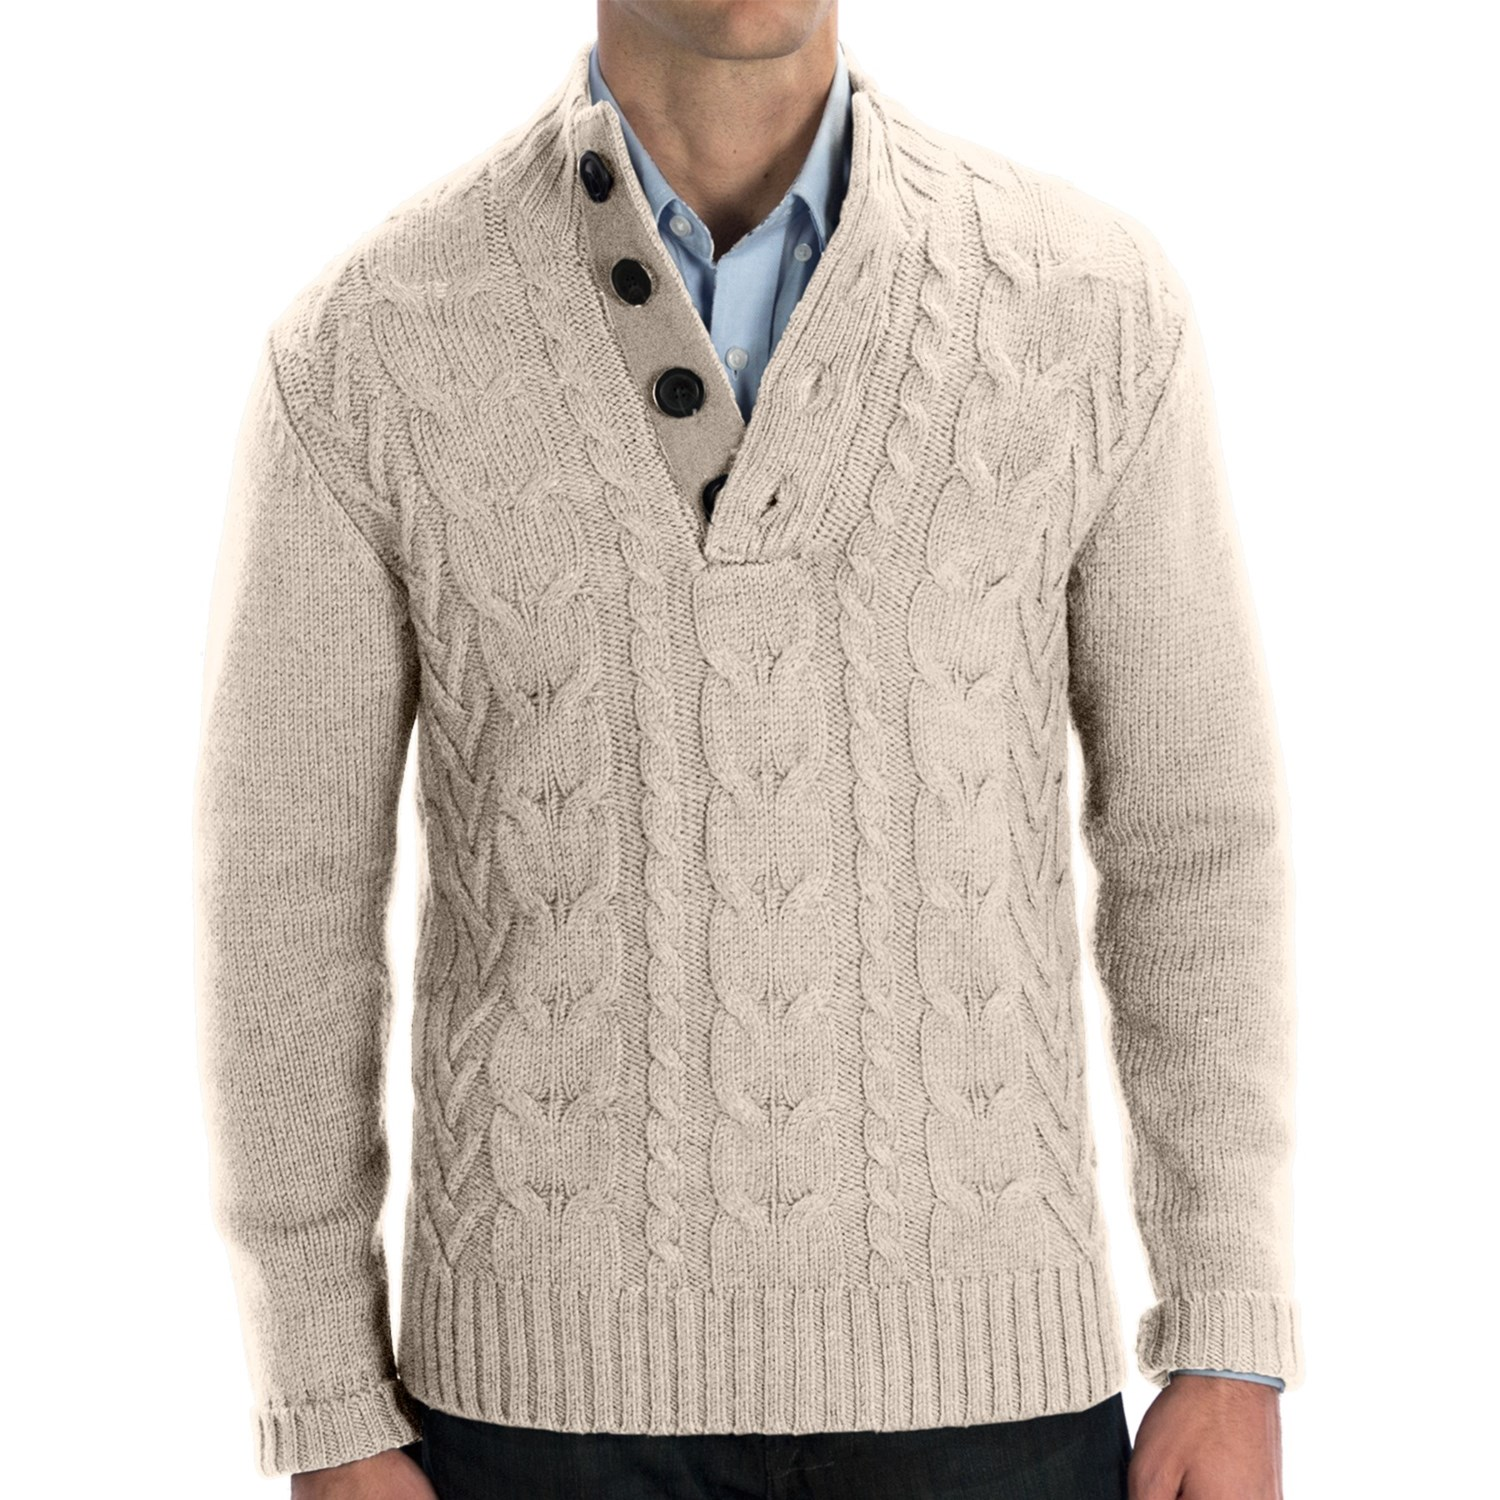 Free Mens Cable Knit Sweater Patterns : Man Cable Knit Sweater - Long Sweater Jacket